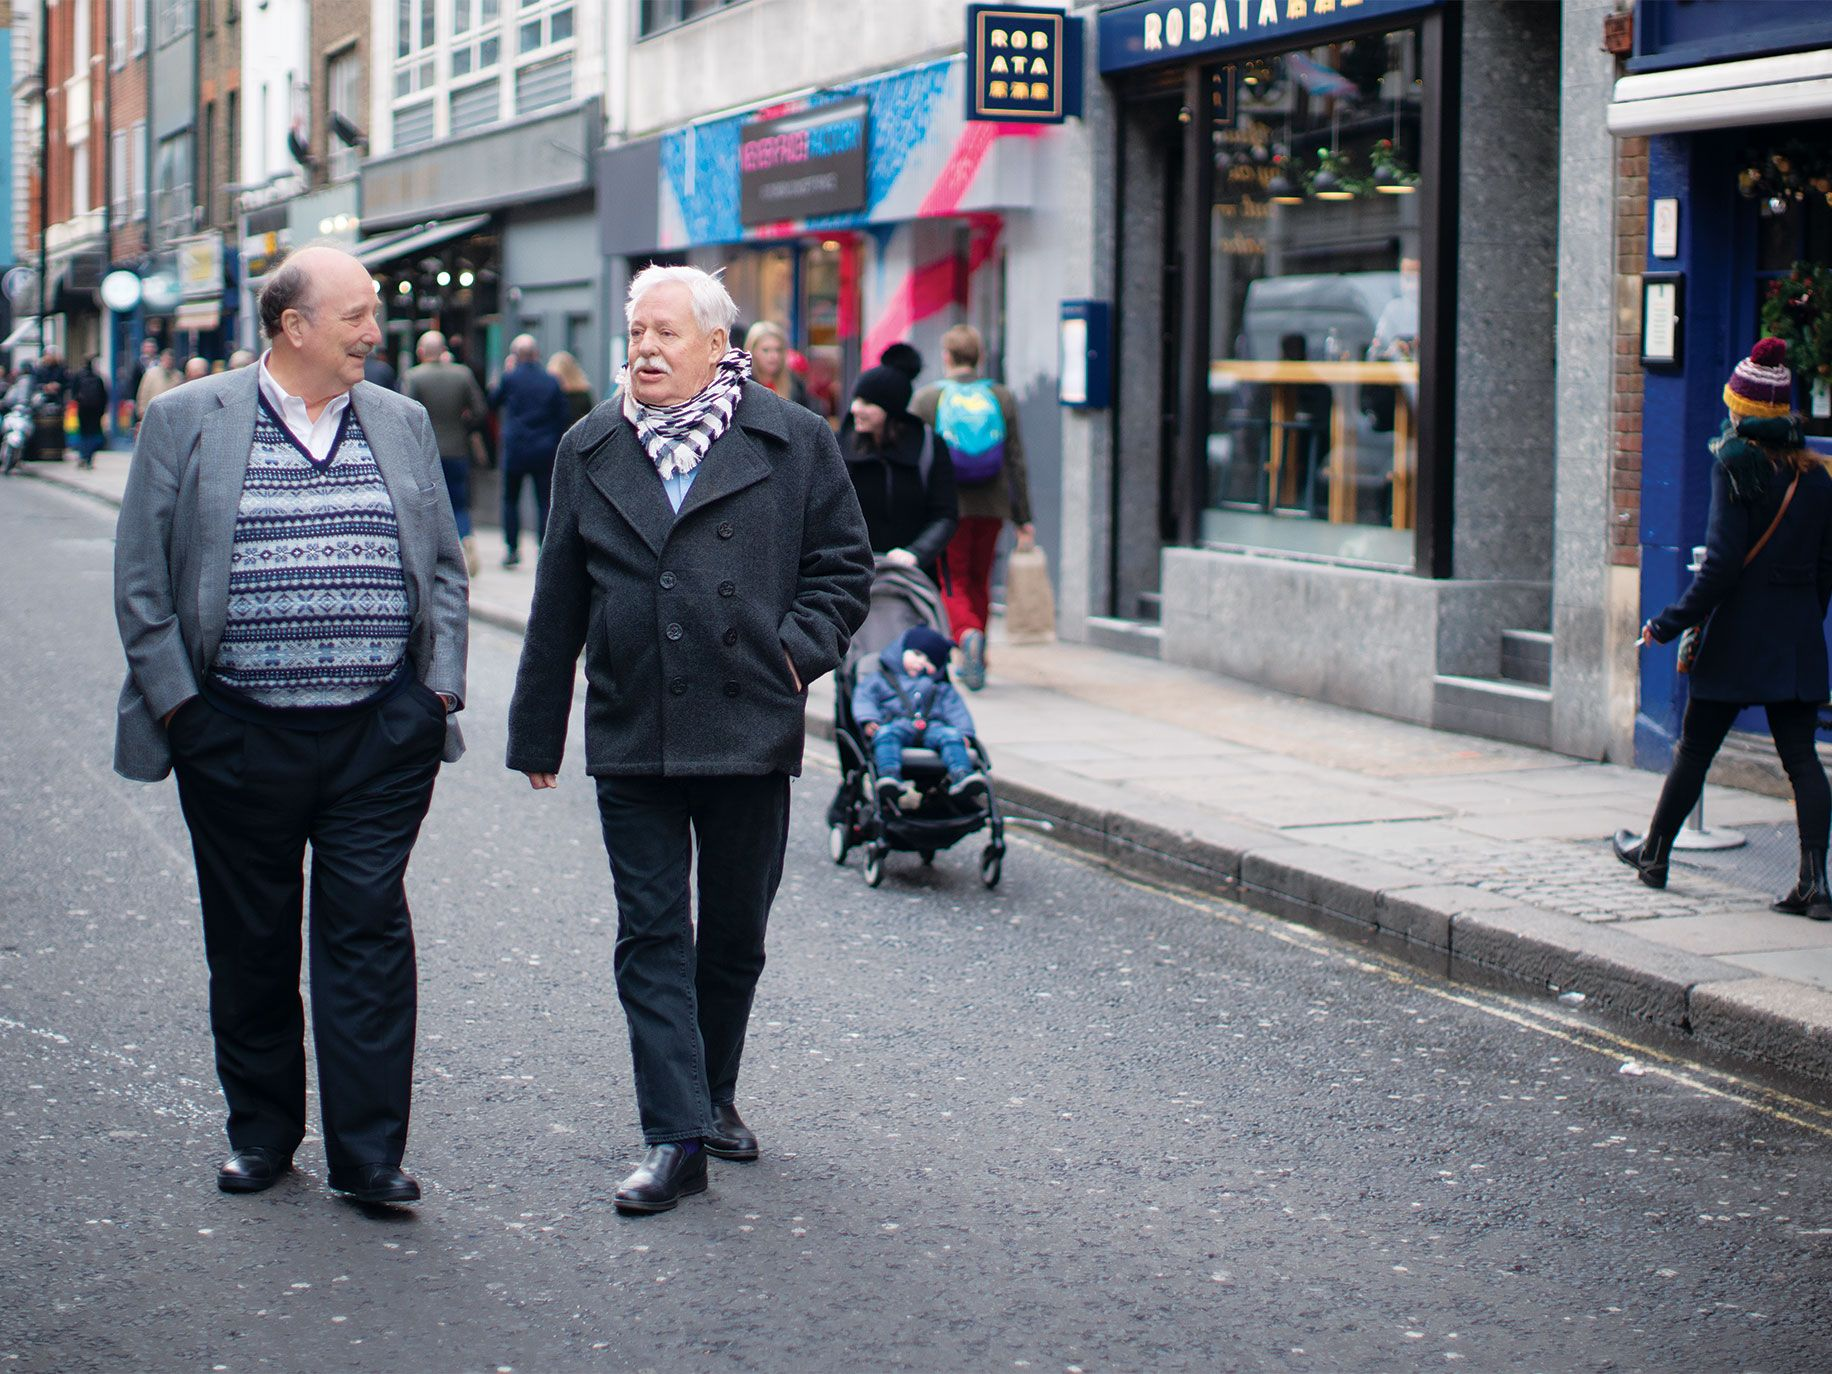 Hearst (left) and Maupin stroll along Old Compton Street in London.